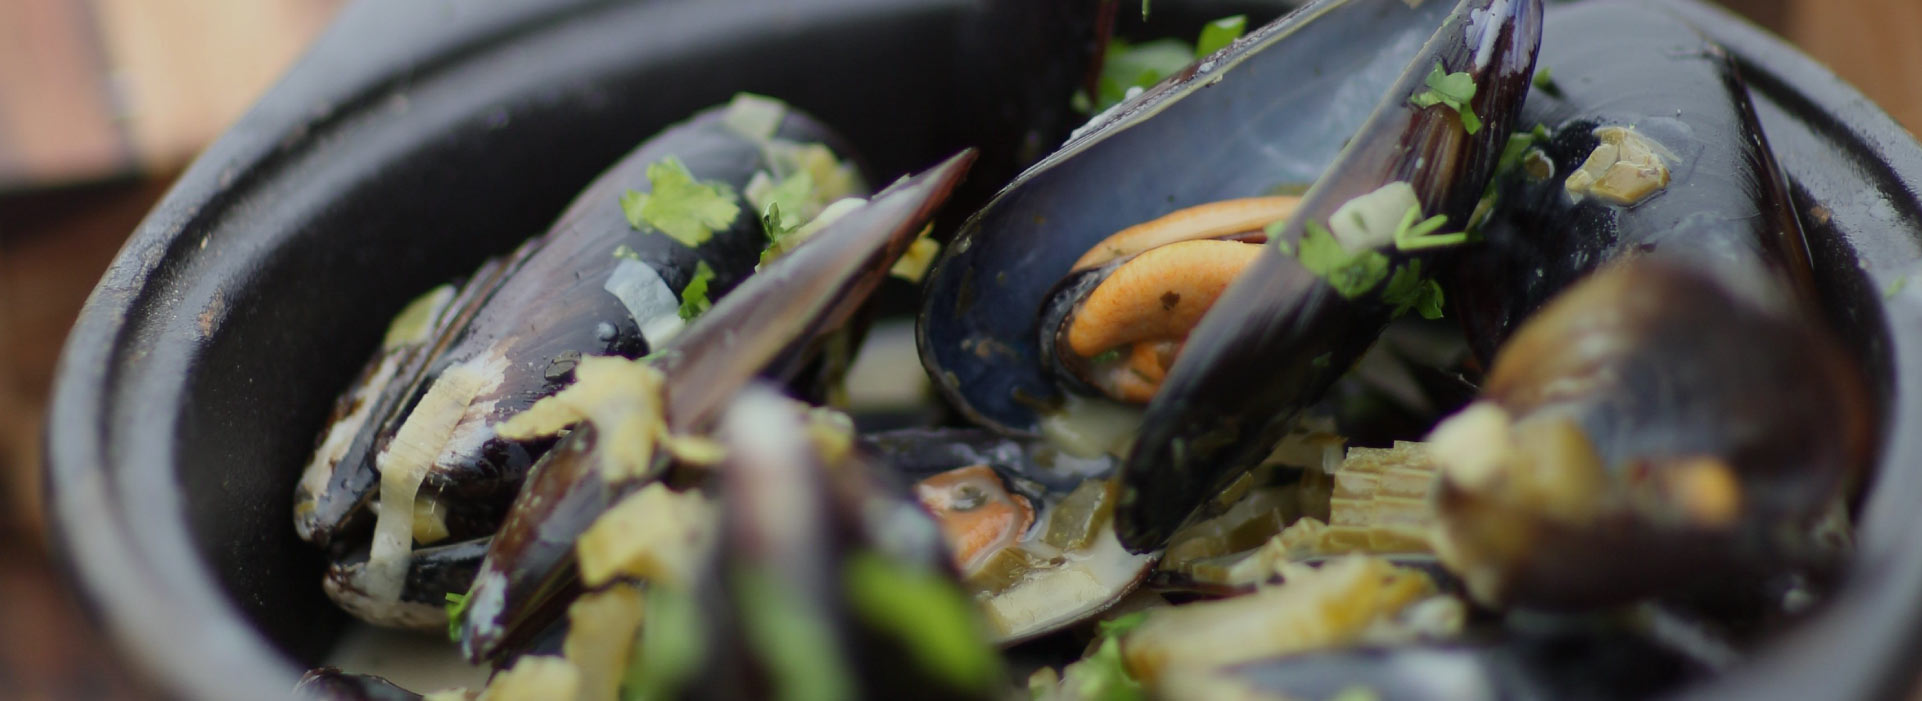 blue-ocean-mussels-close-up-dish